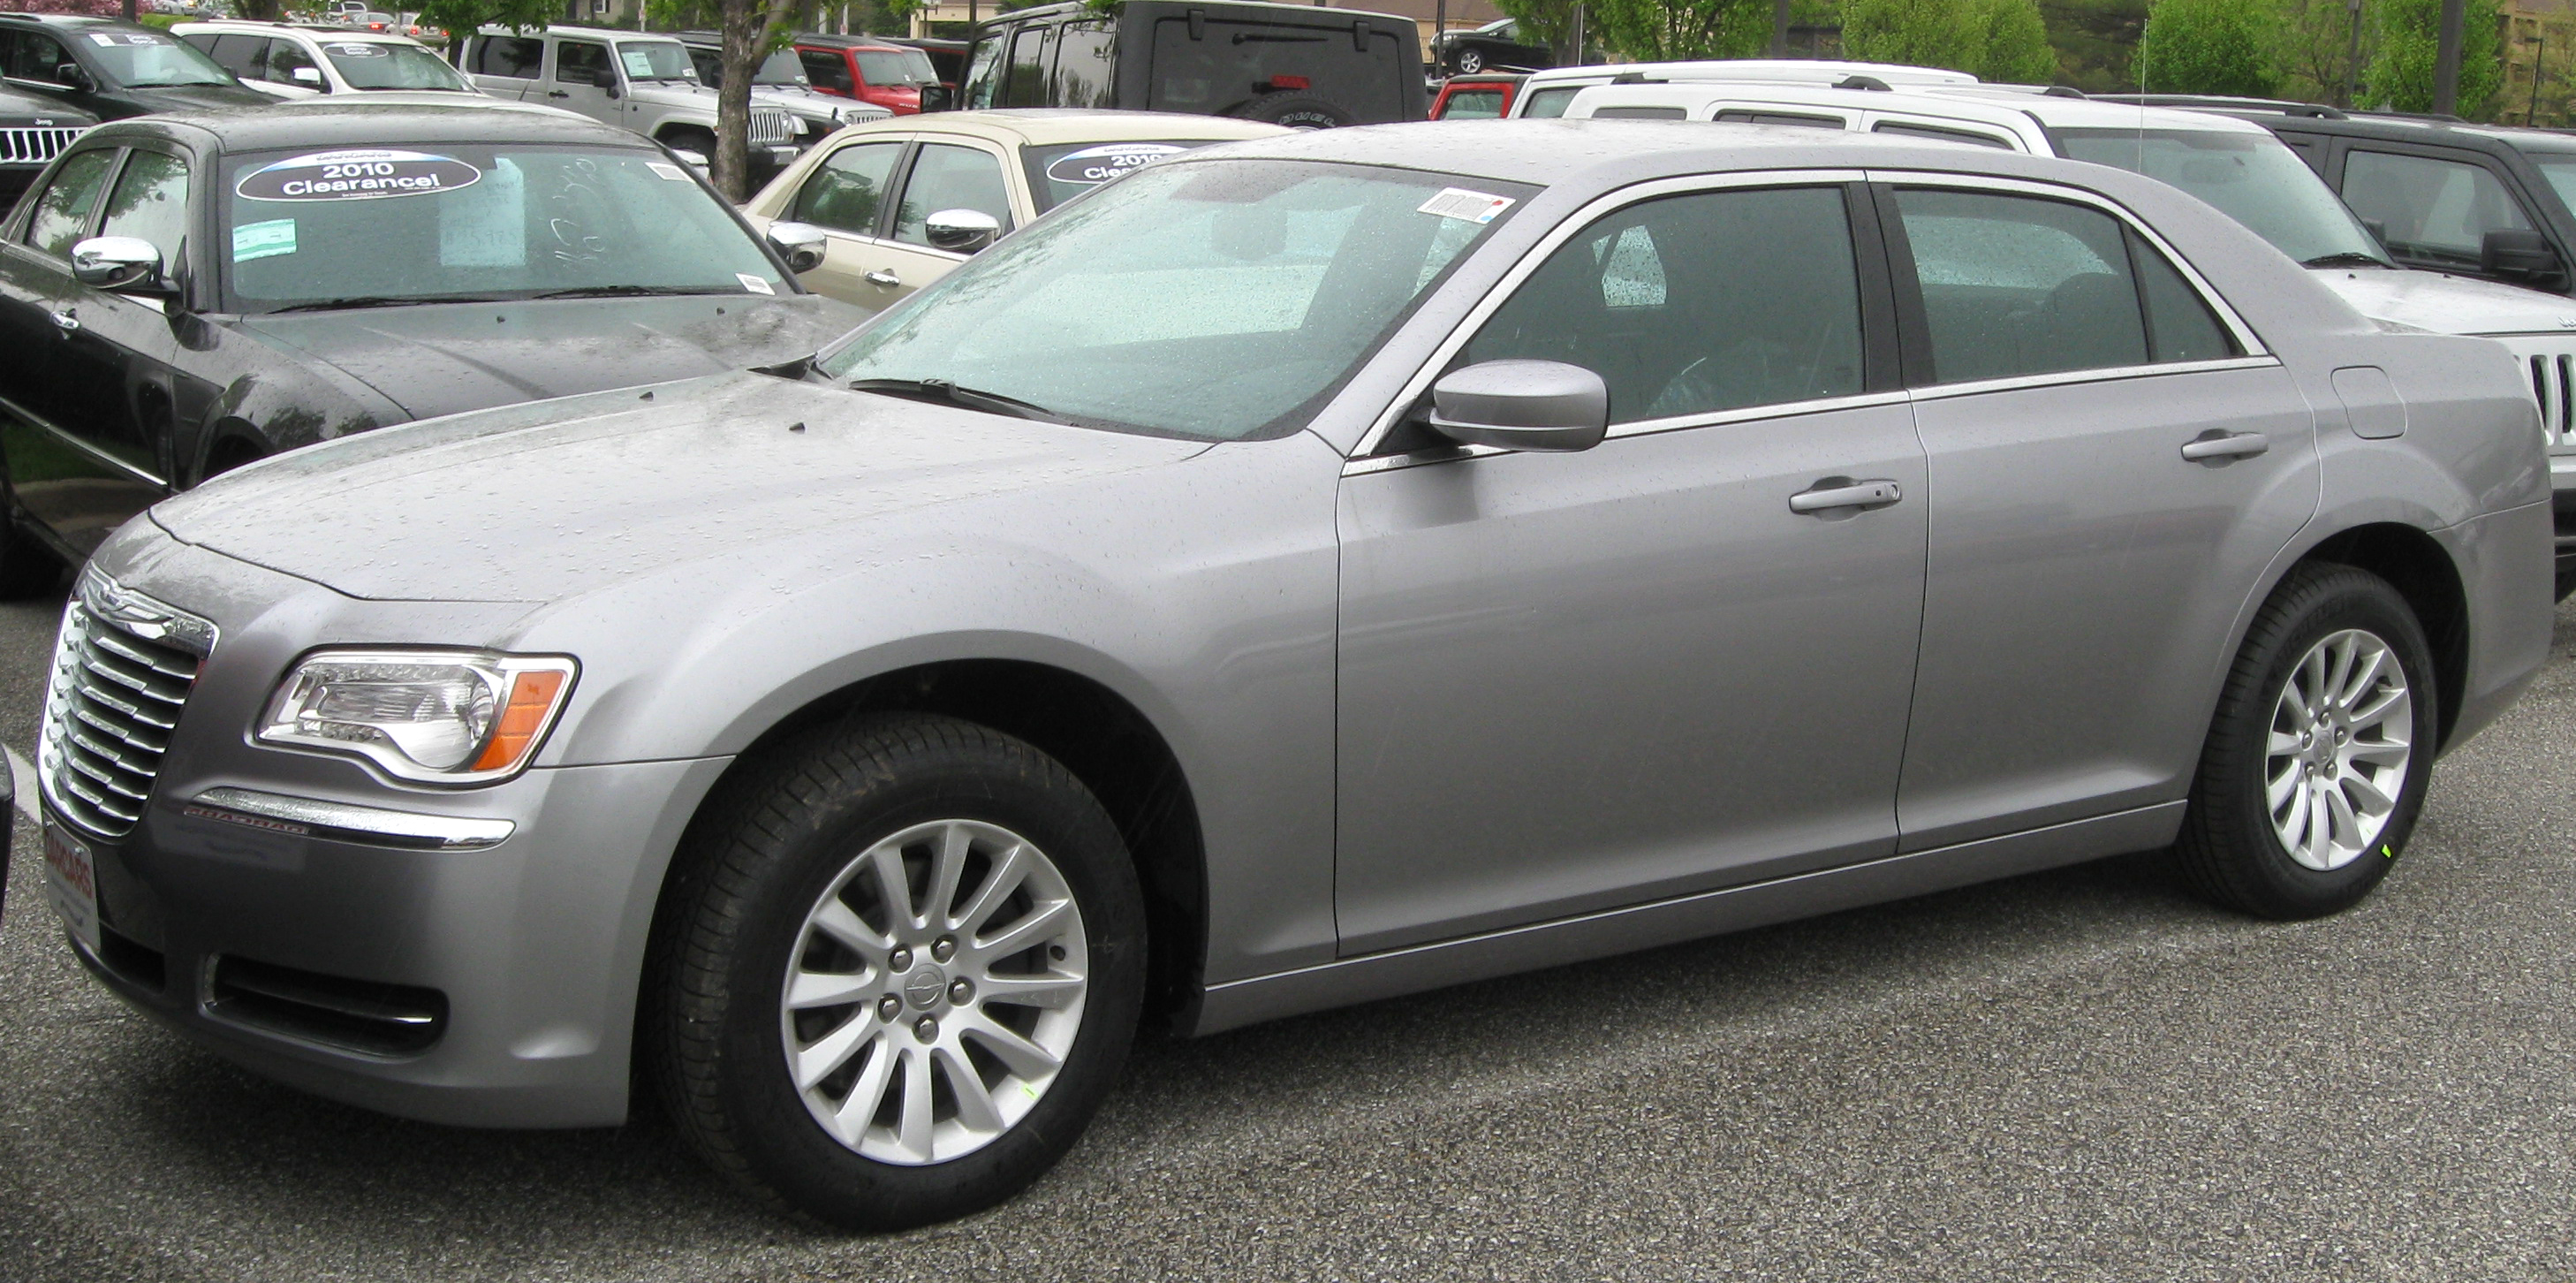 Chrysler 300 #19